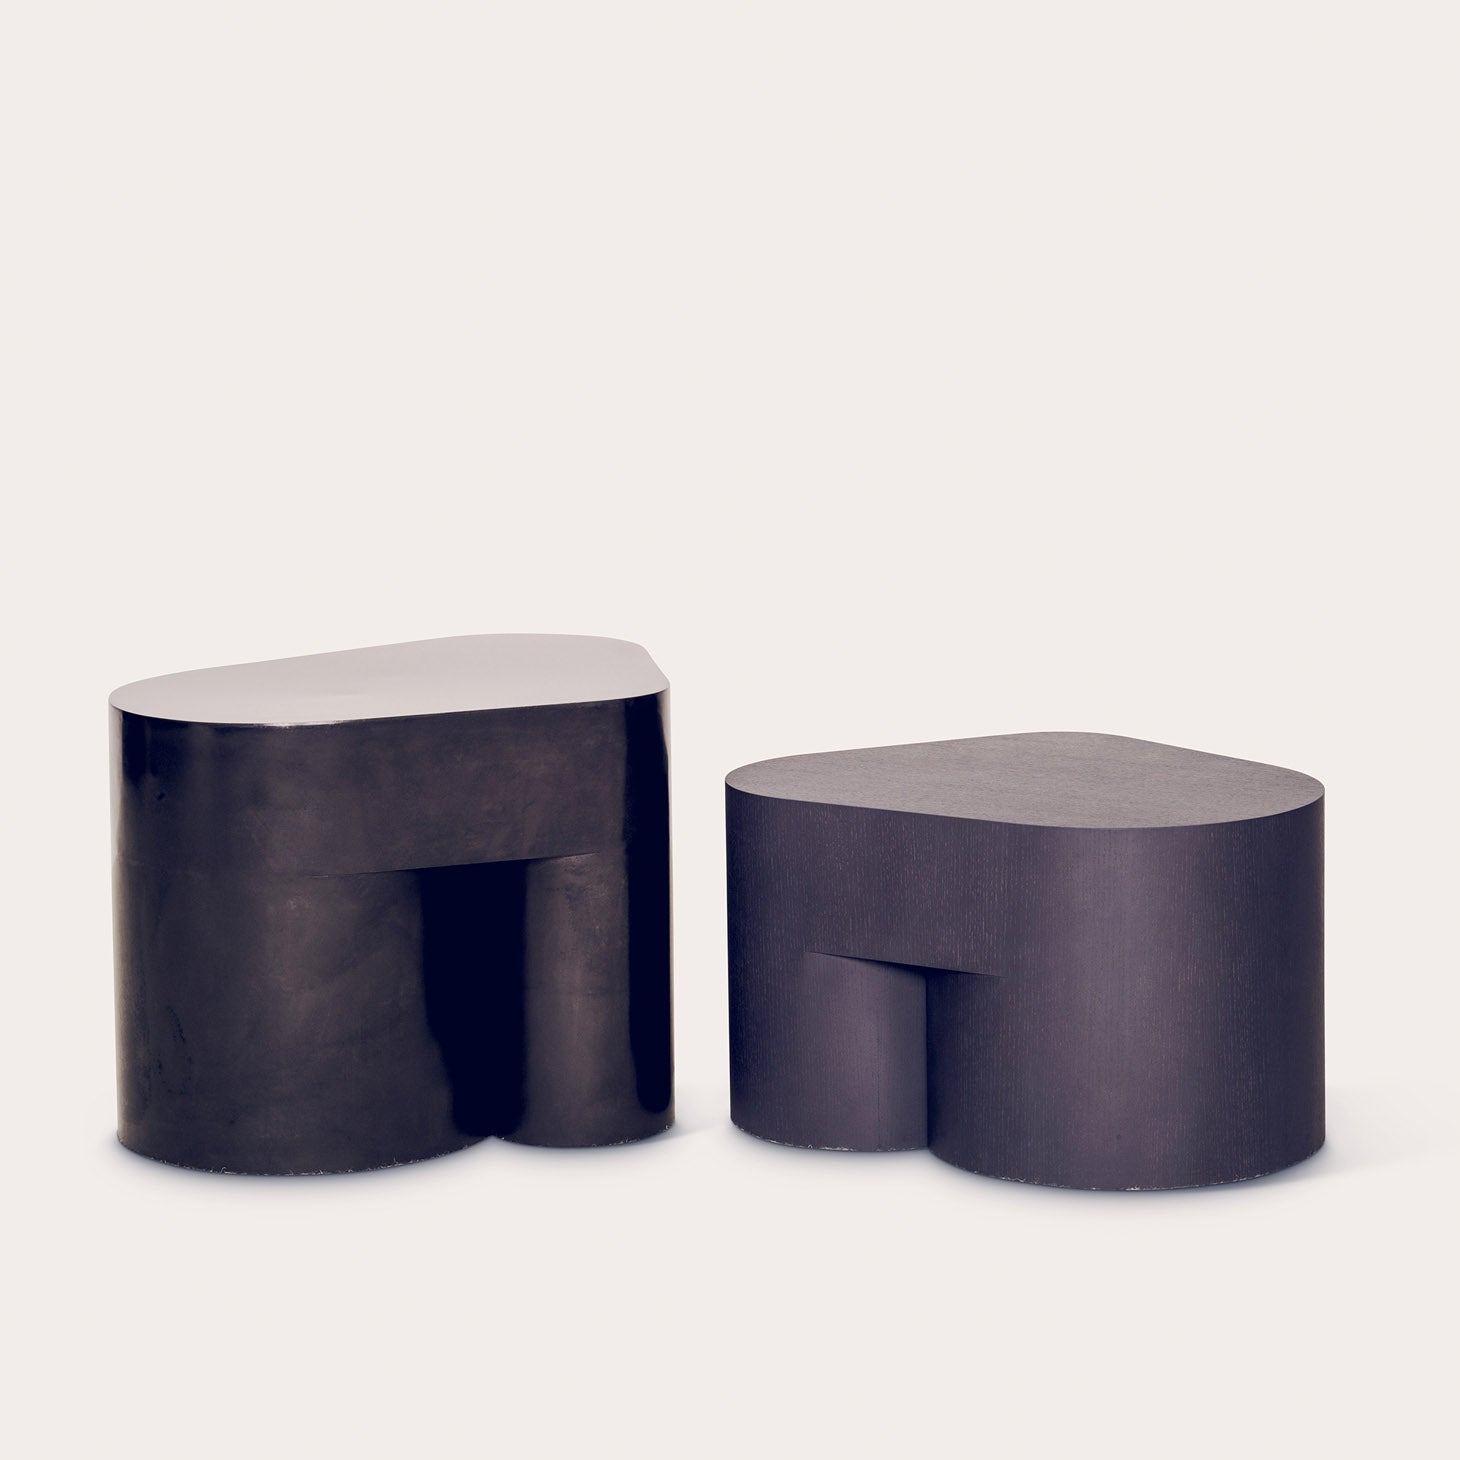 DOO Tables Christophe Delcourt Designer Furniture Sku: 008-230-10396